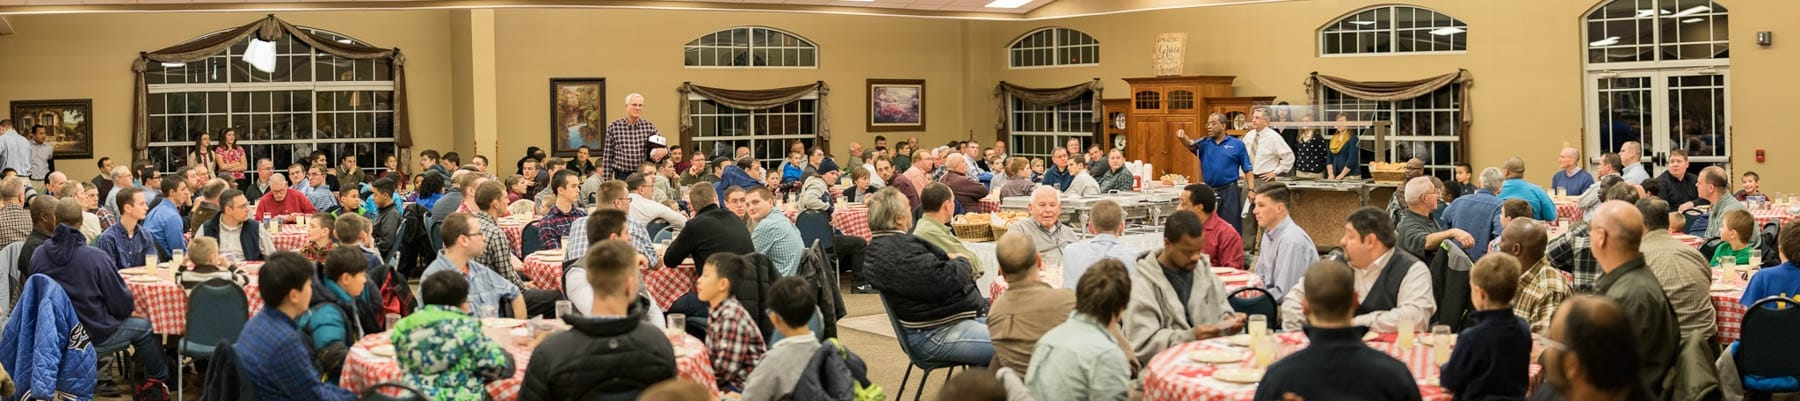 Fairhaven Baptist Church Men's Barbeque 2016 (2 of 12)